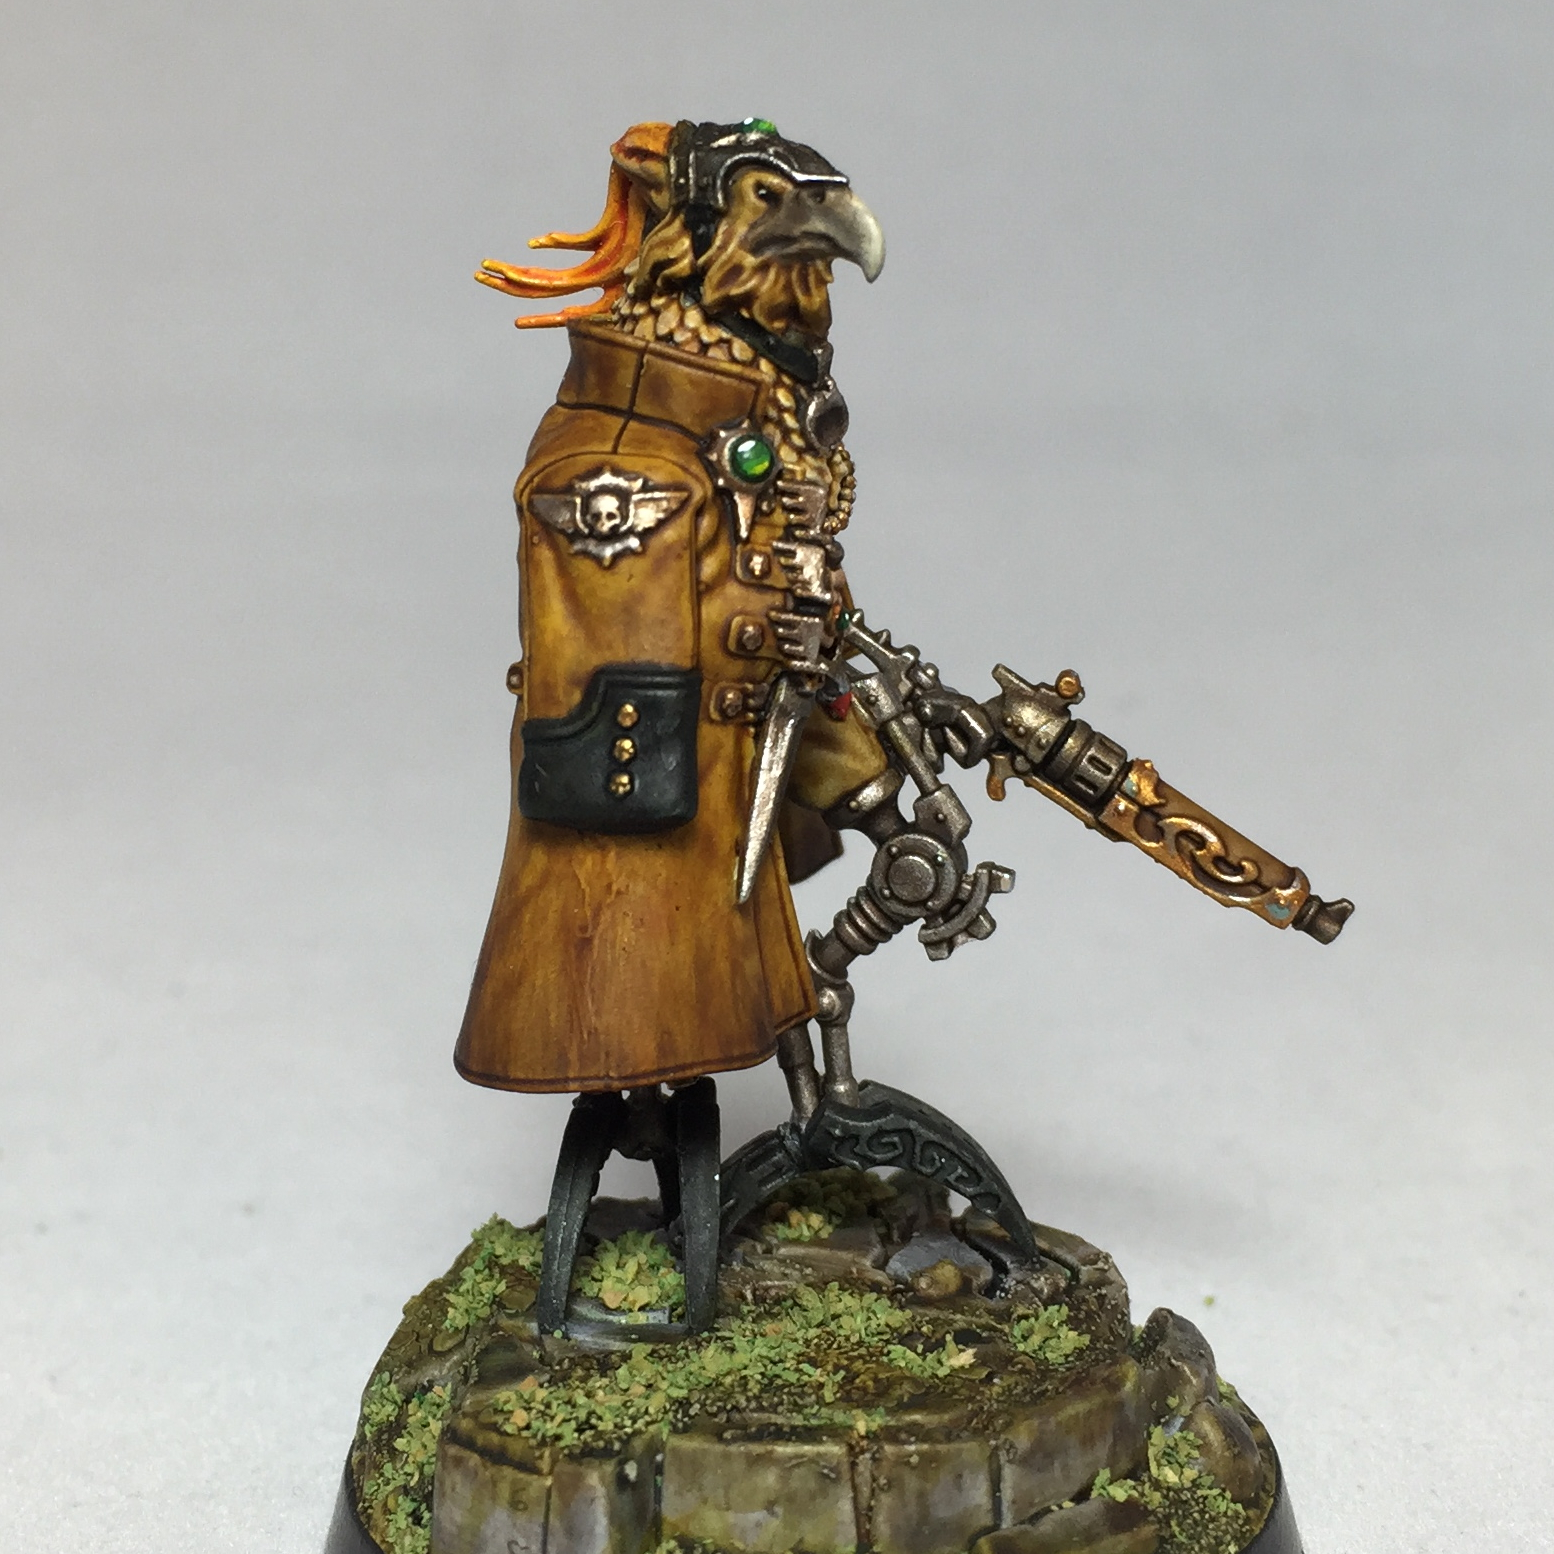 The Master of the Hunt